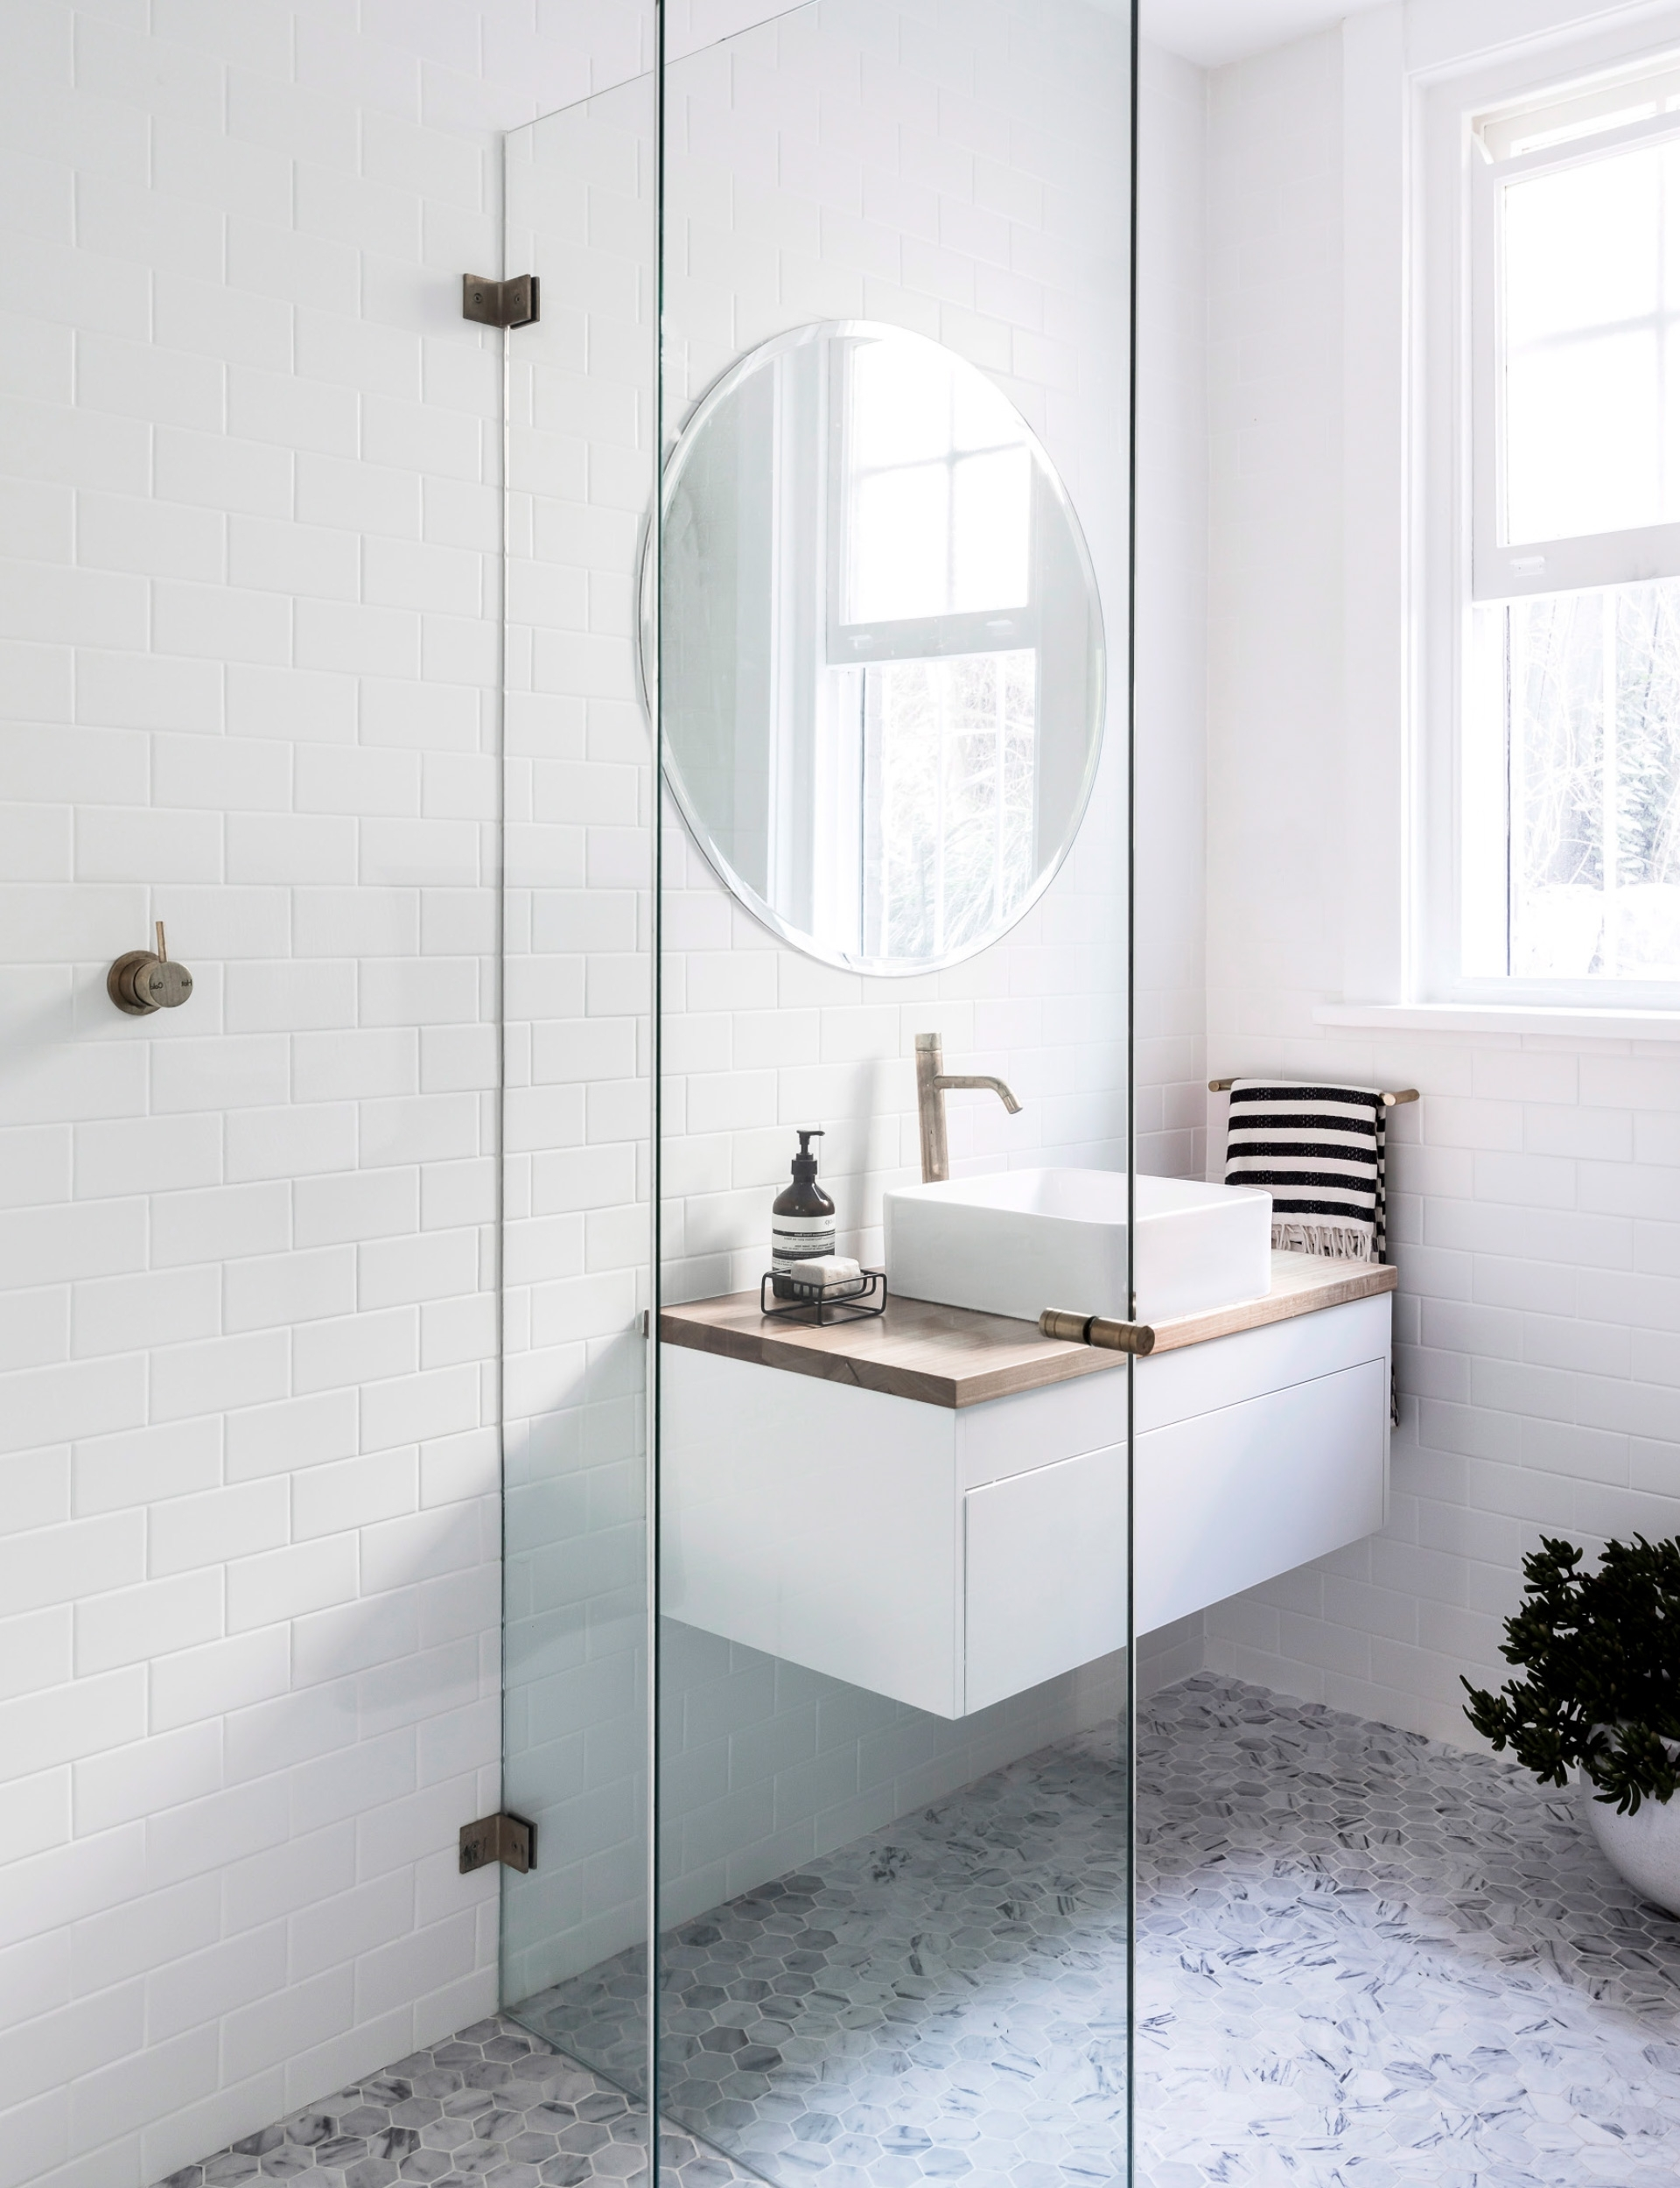 How To Design A Small Bathroom To Make It Feel Bigger 30+ Compact Ensuite Bathroom Designs Ideas